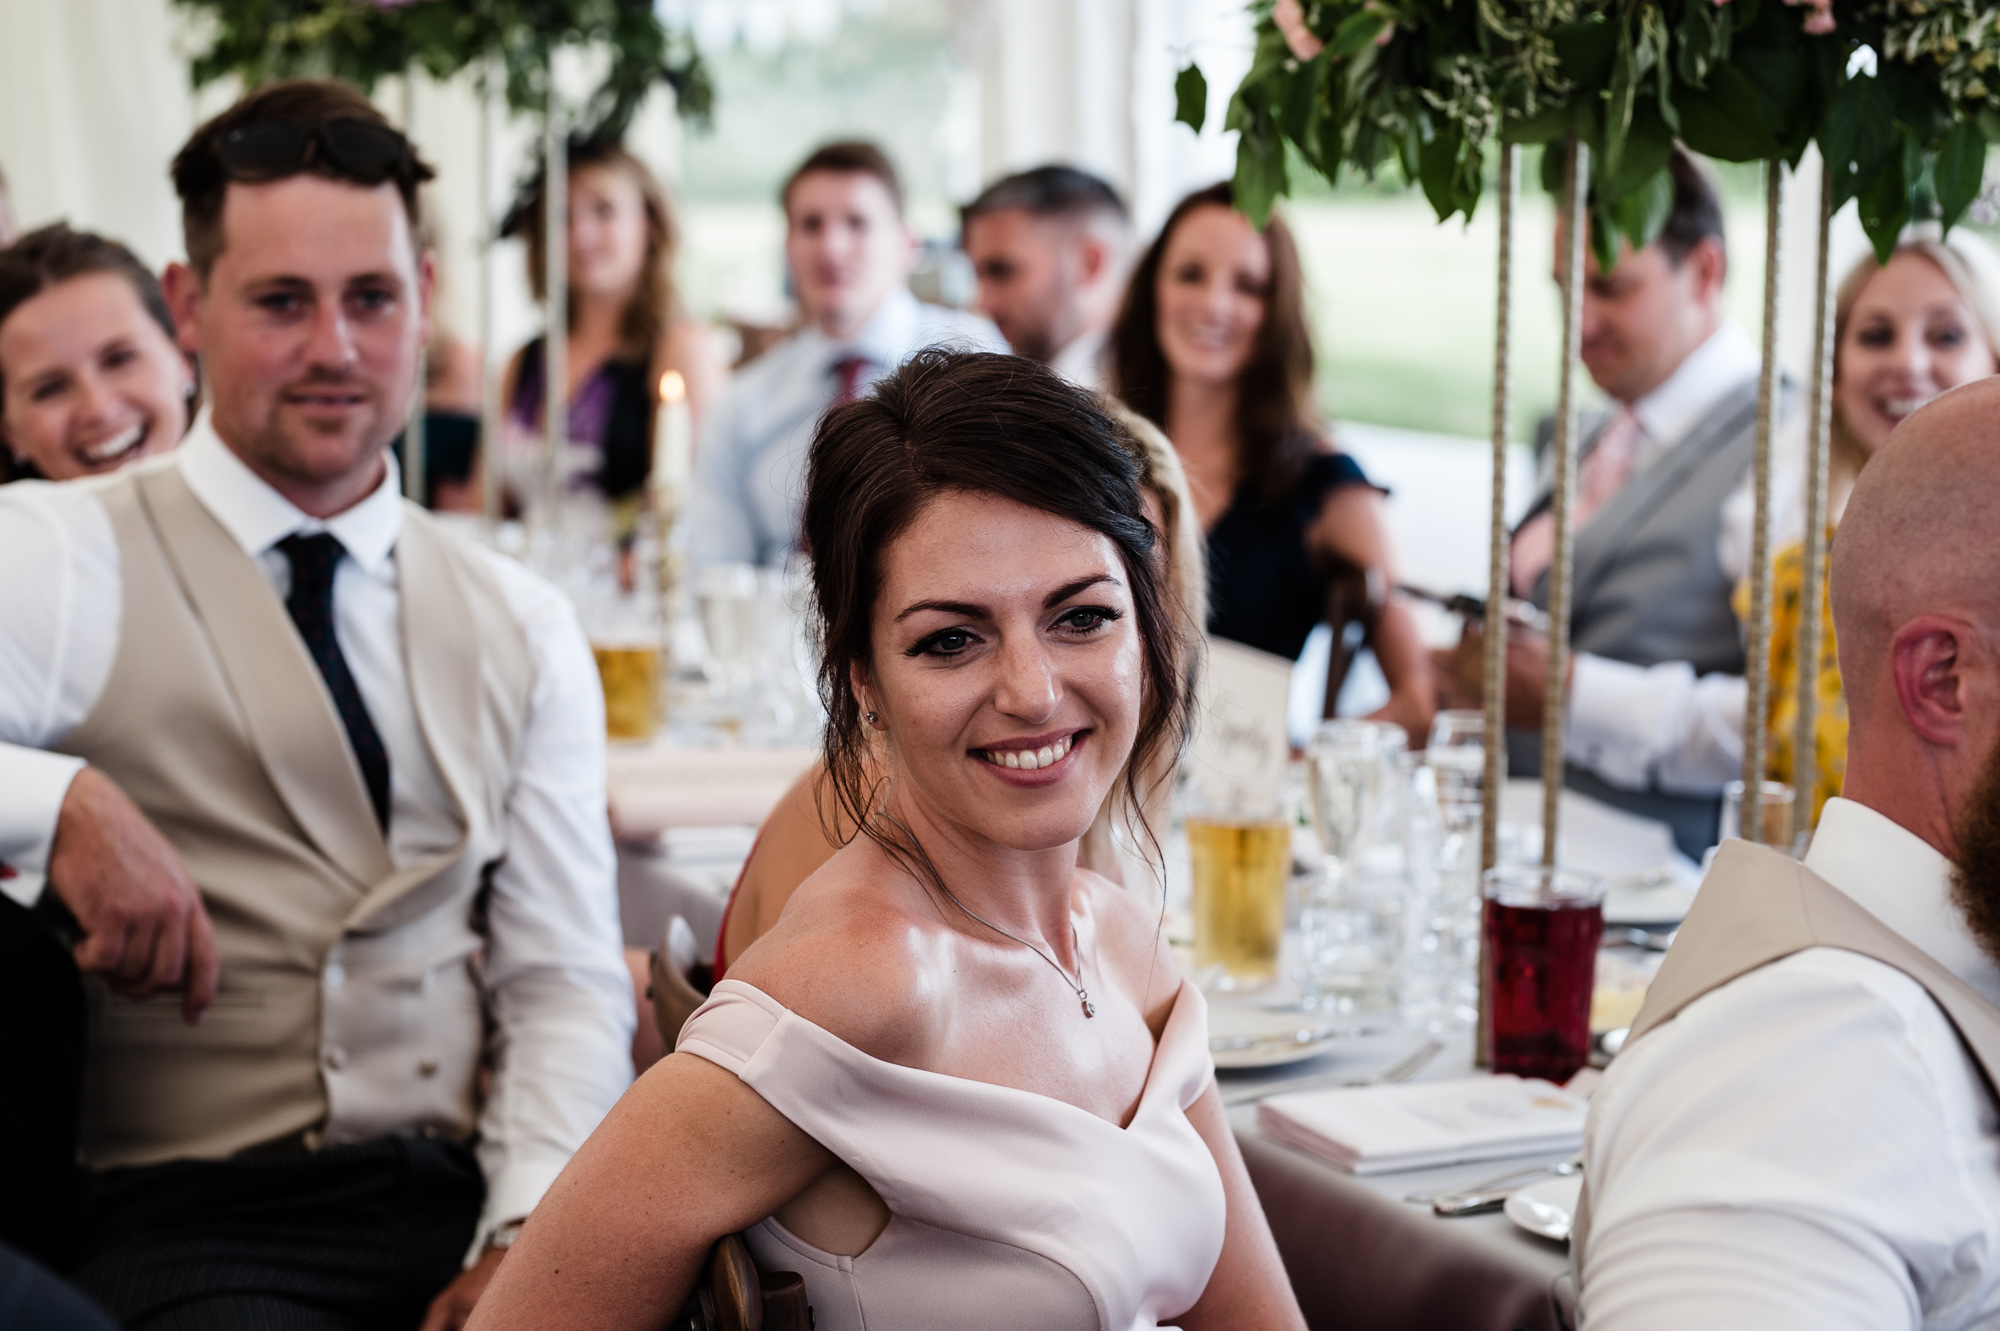 Cotswold Wedding Photography 11.09.1834.jpg